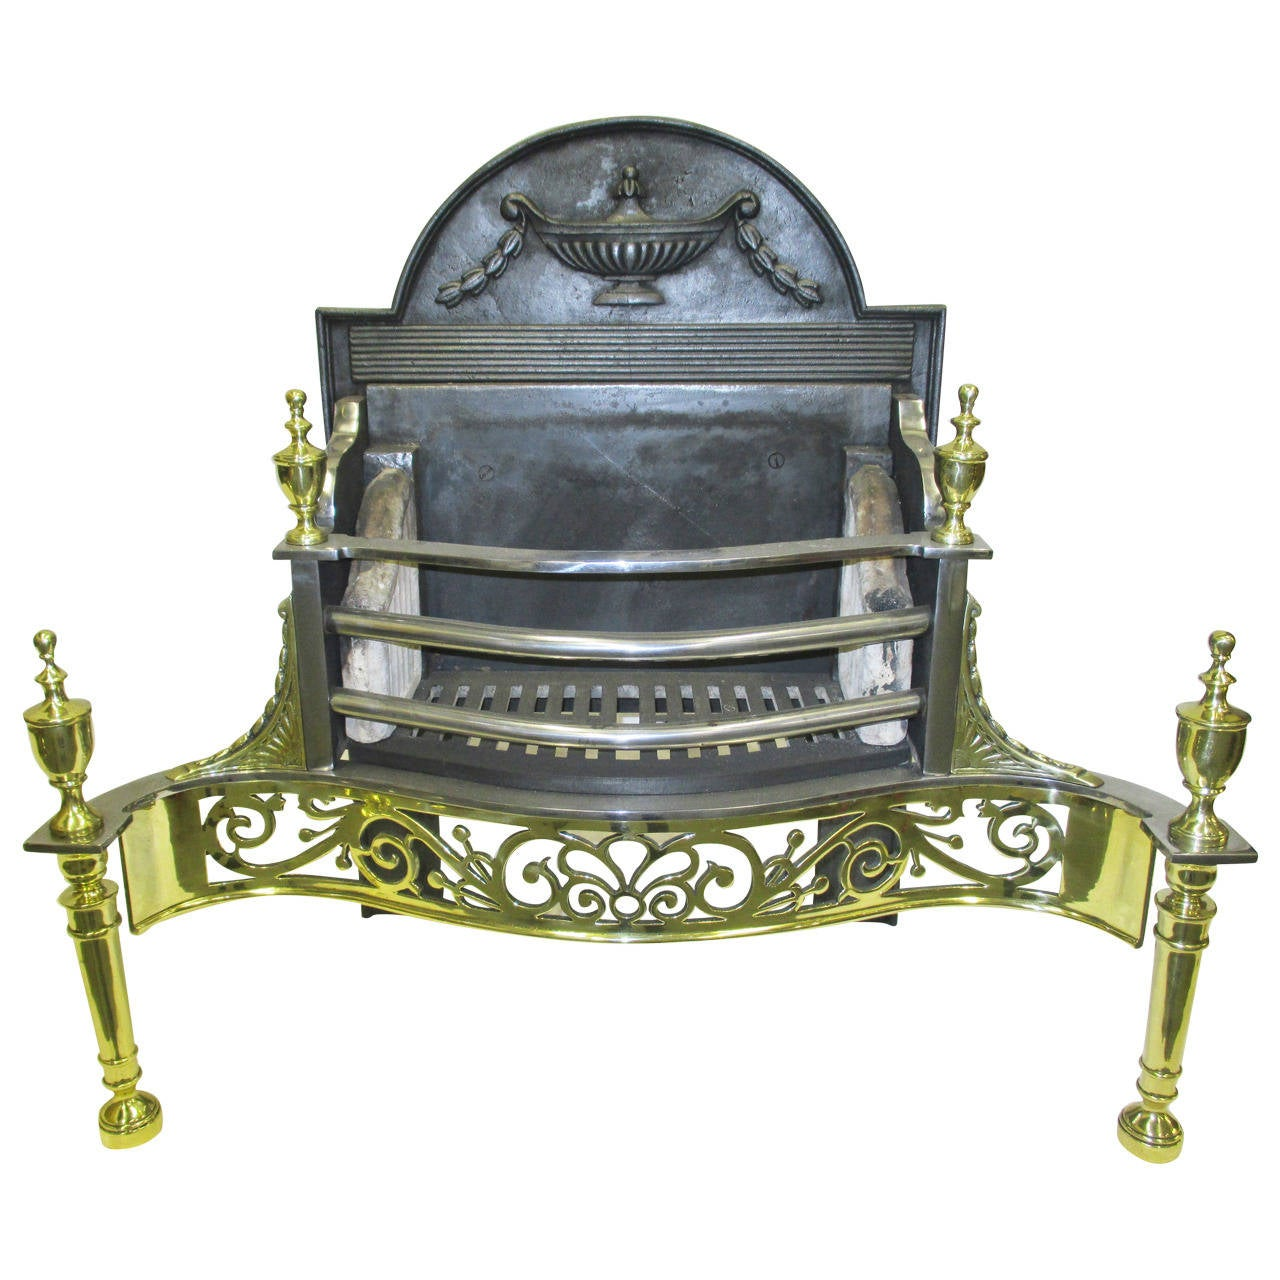 Antique Brass Cast Iron And Steel Fire Grate 19th Century At 1stdibs